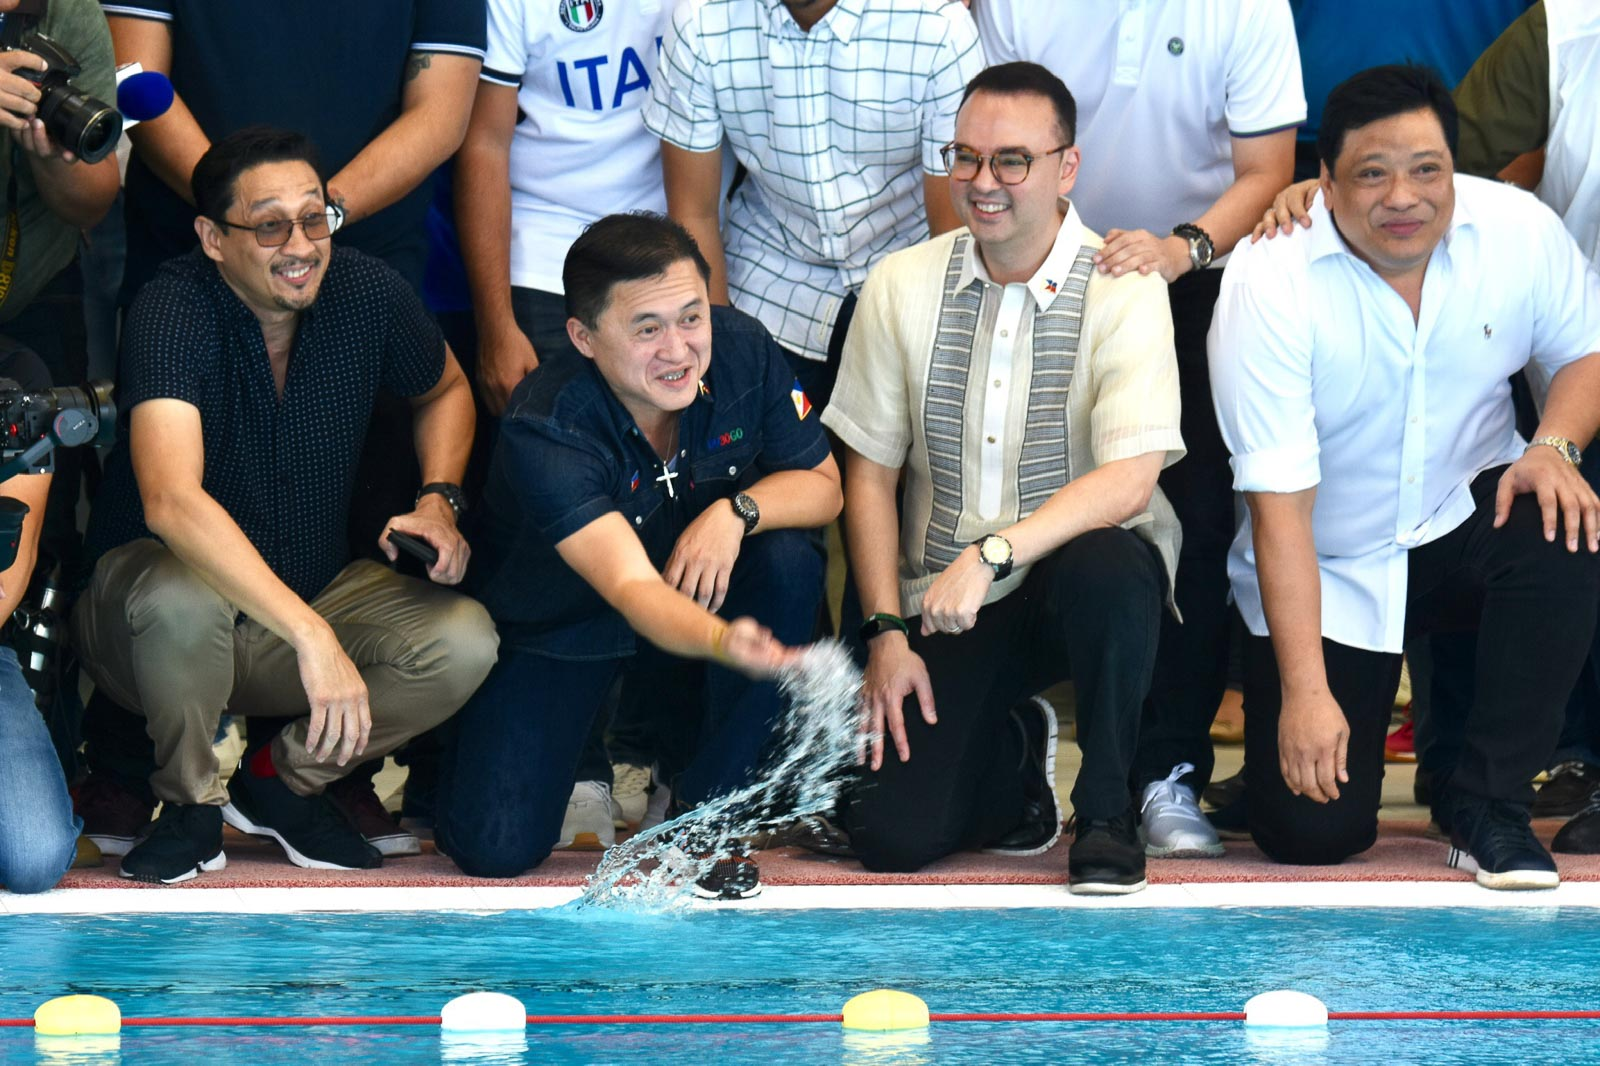 LAWMAKERS' INSPECTION. Senator Bong Go and House Speaker Alan Peter Cayetano pose for the cameras inside the New Clark City Sports Complex. Photo by Angie de Silva/Rappler